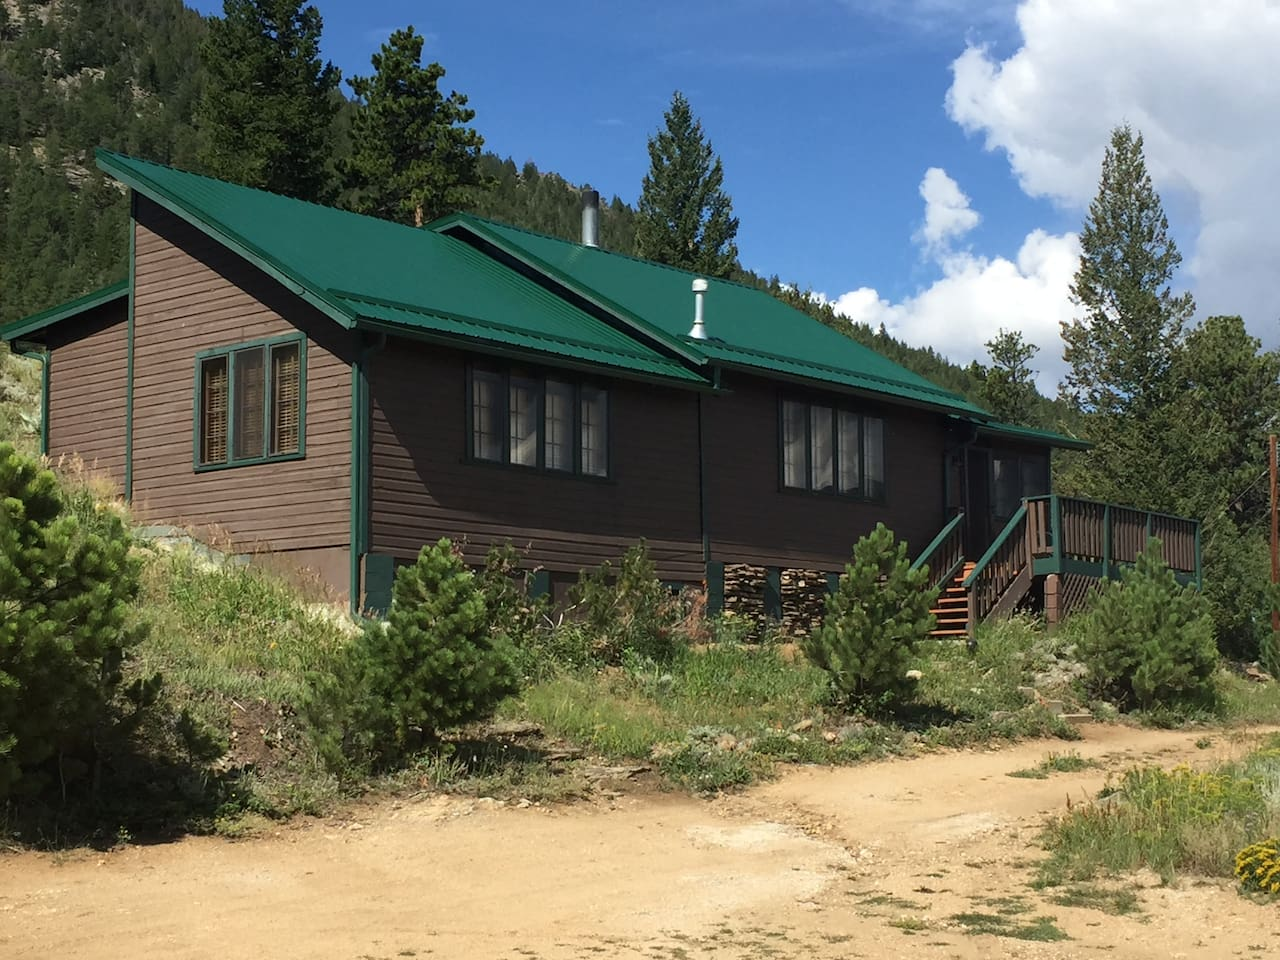 a tranquil accesskeyid adults quiet only cabin colorado tub in disposition rentals estes cabins jacuzzi offers rental and park alloworigin hot